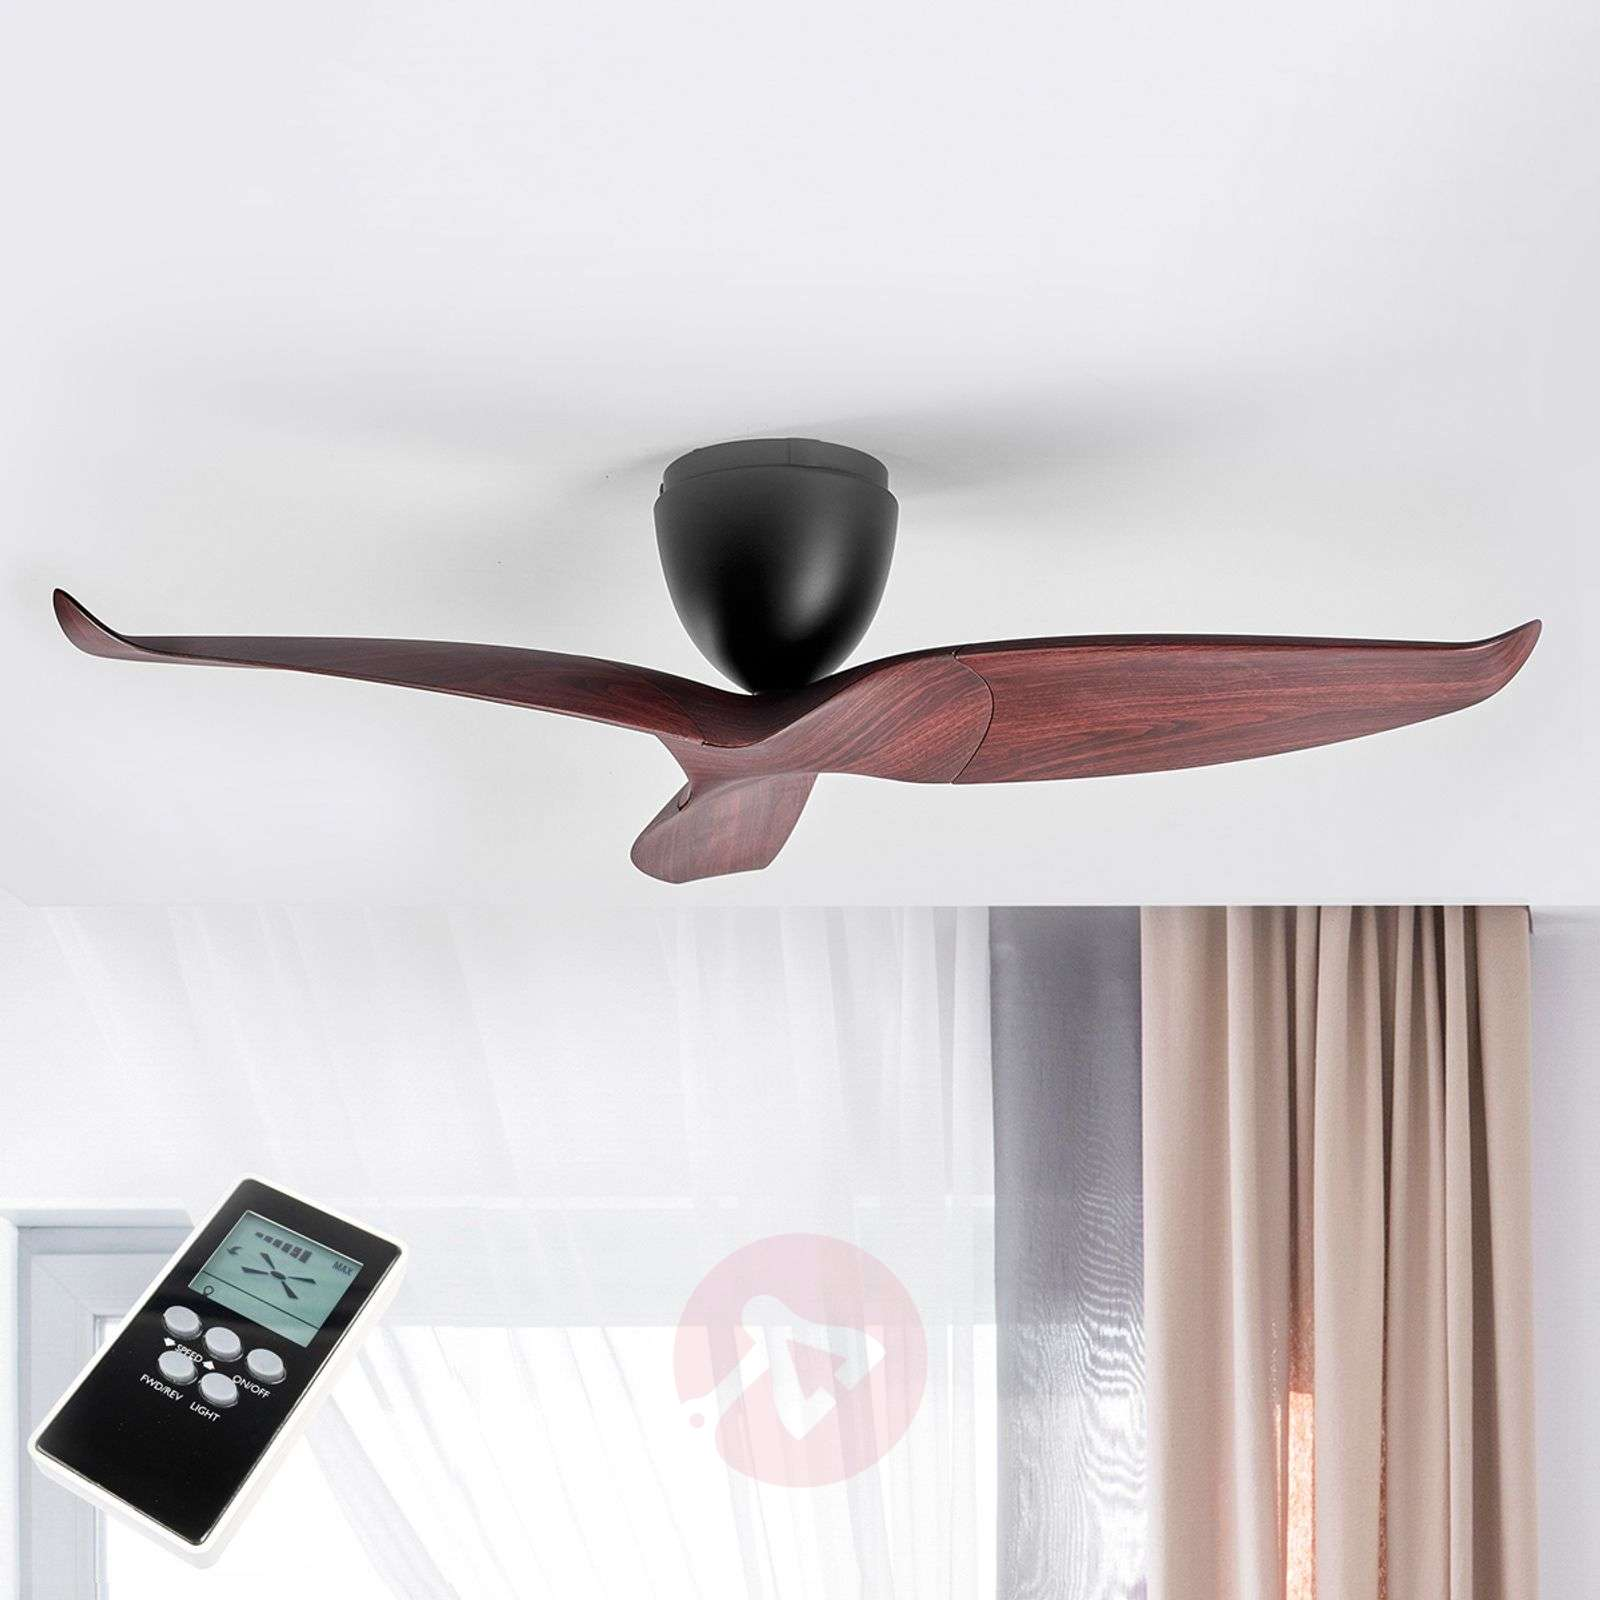 Wood finish ceiling fan Aeratron, 126 cm-1068013-09